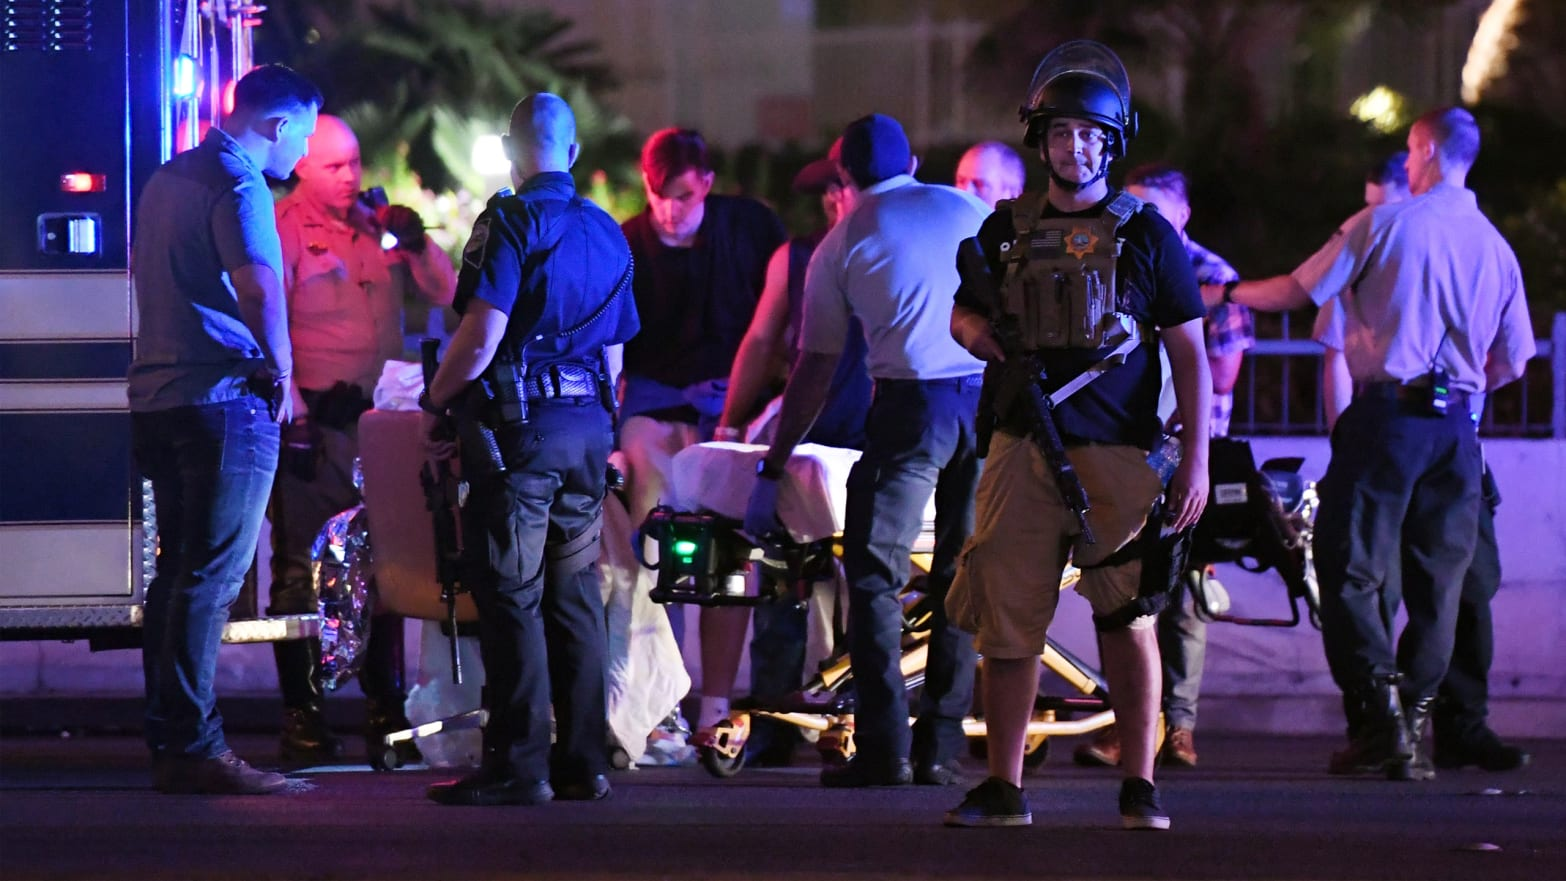 A gunman has opened fire on a music festival in Las Vegas.